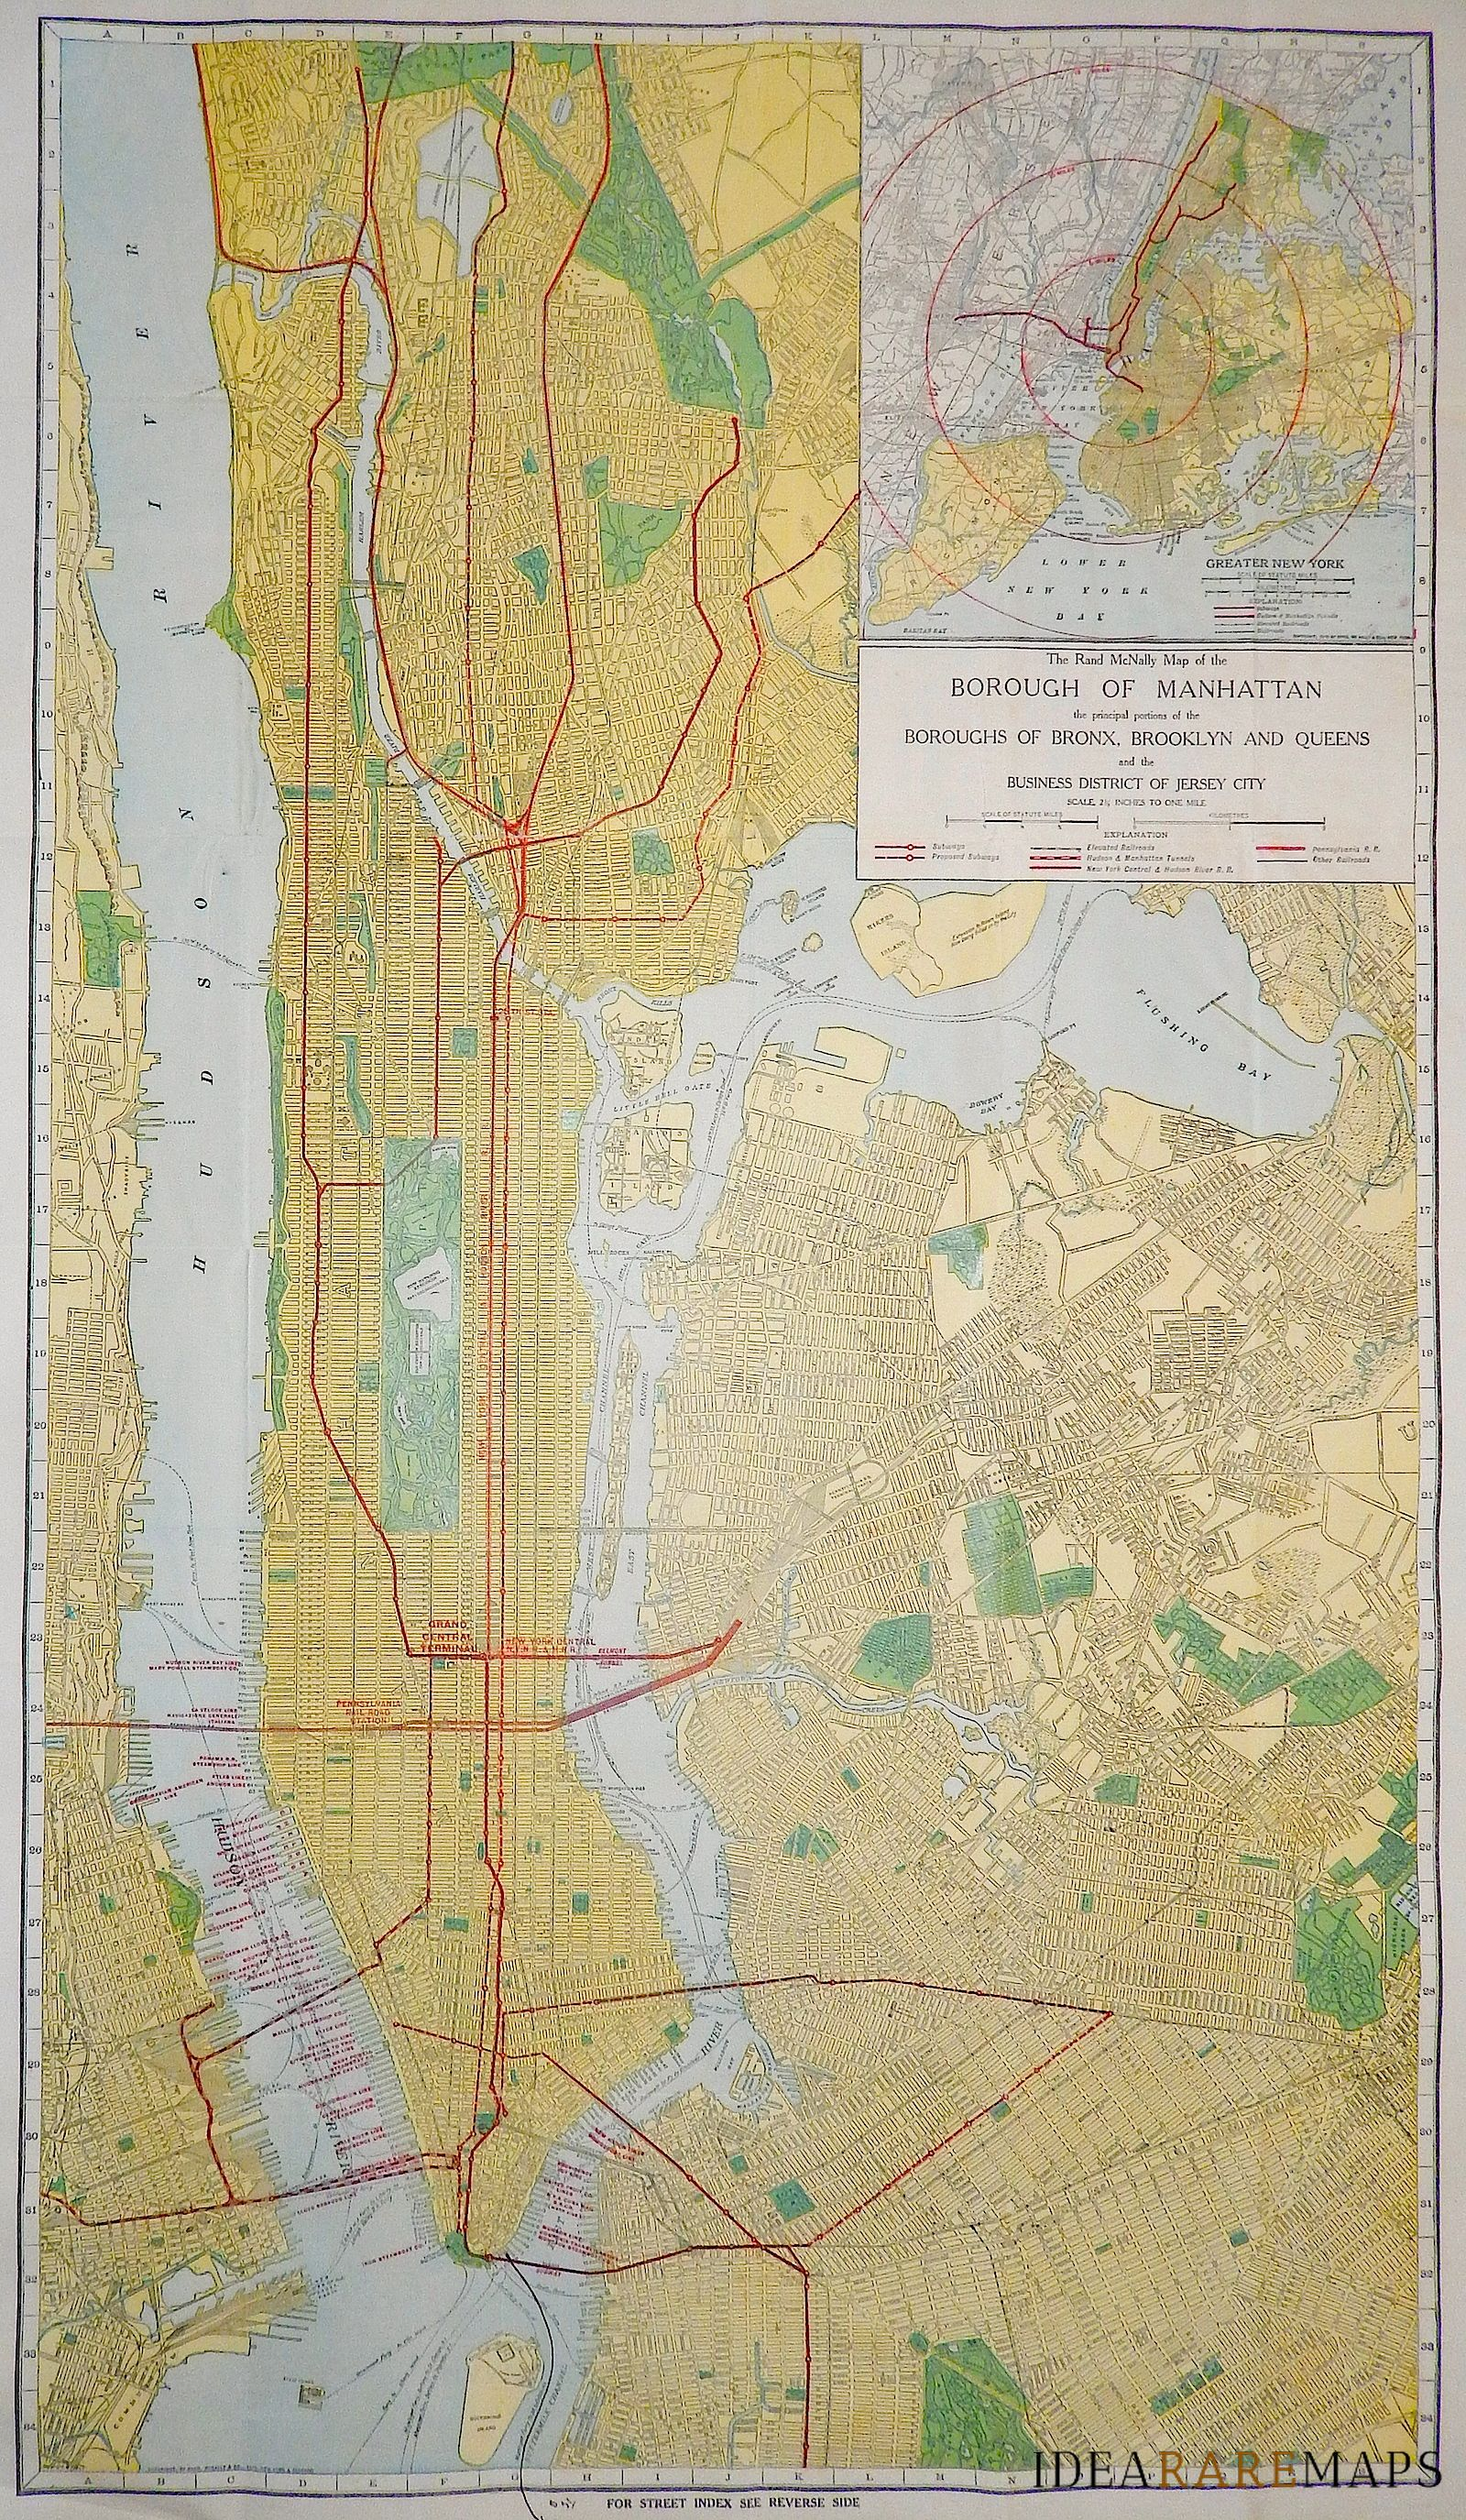 Map Of New York Showing Queens.The Rand Mcnally Map Of The Borough Of Manhattan The Principal